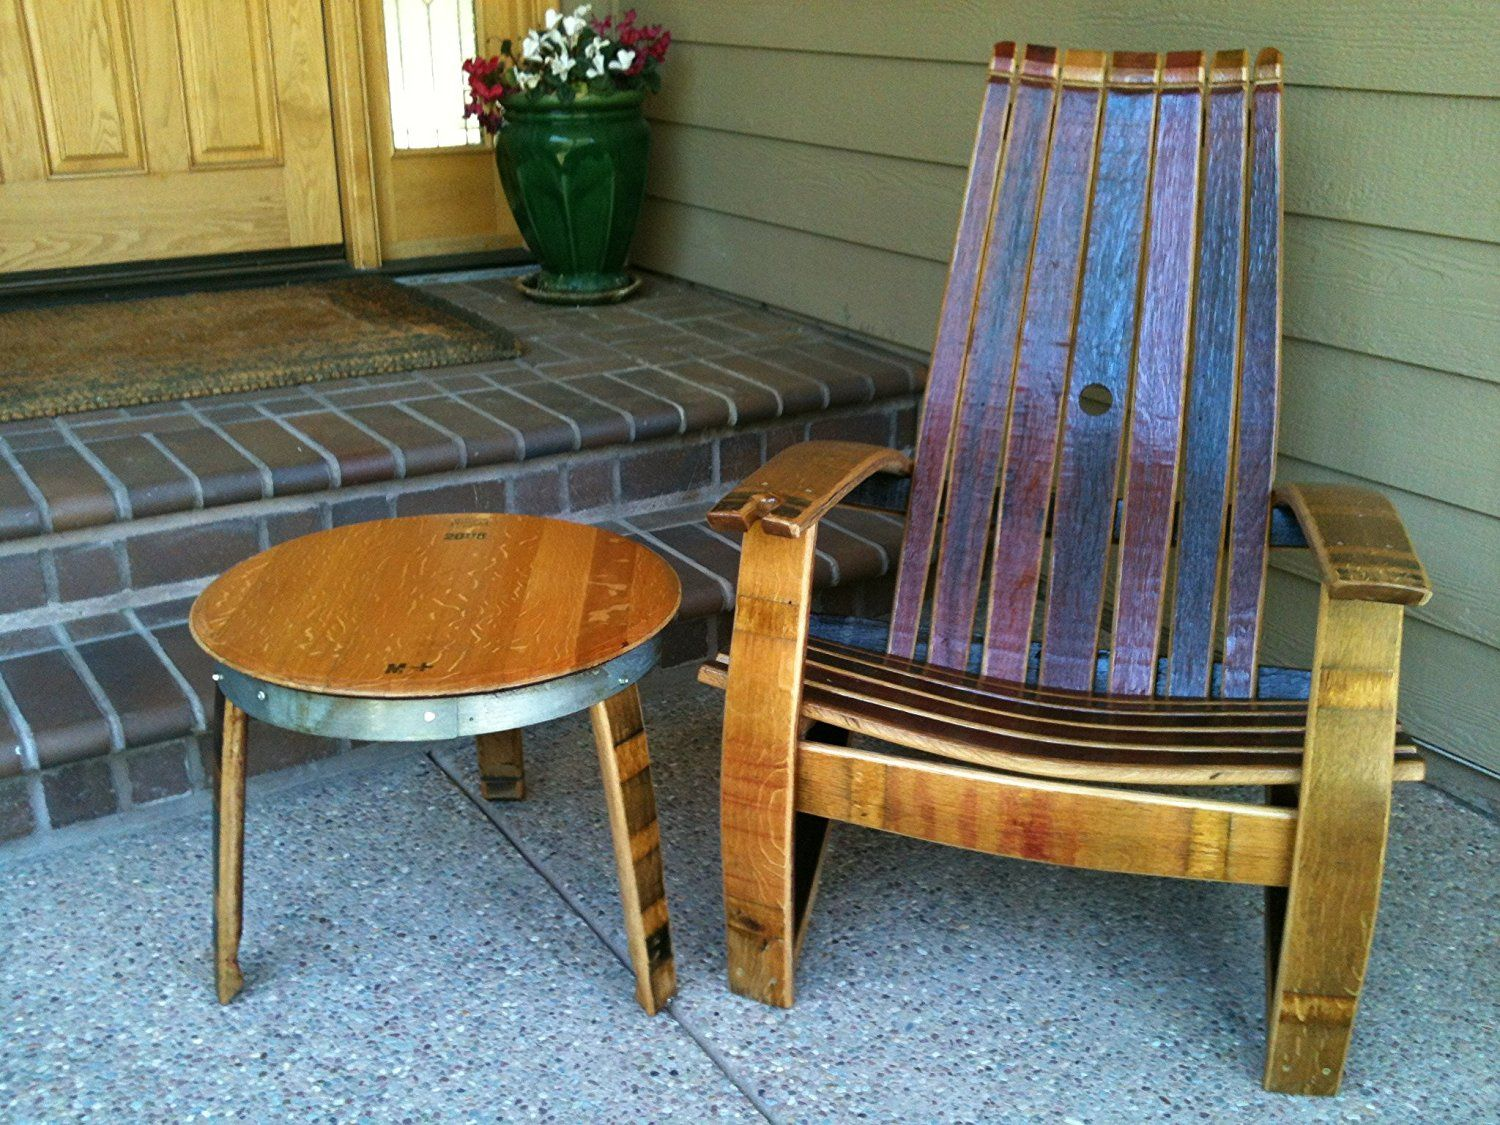 wine barrel outdoor furniture. Wine Barrel Outdoor Furniture - Cool Rustic Check More At Http://cacophonouscreations.com/wine-barrel-outdoor-furniture/ C